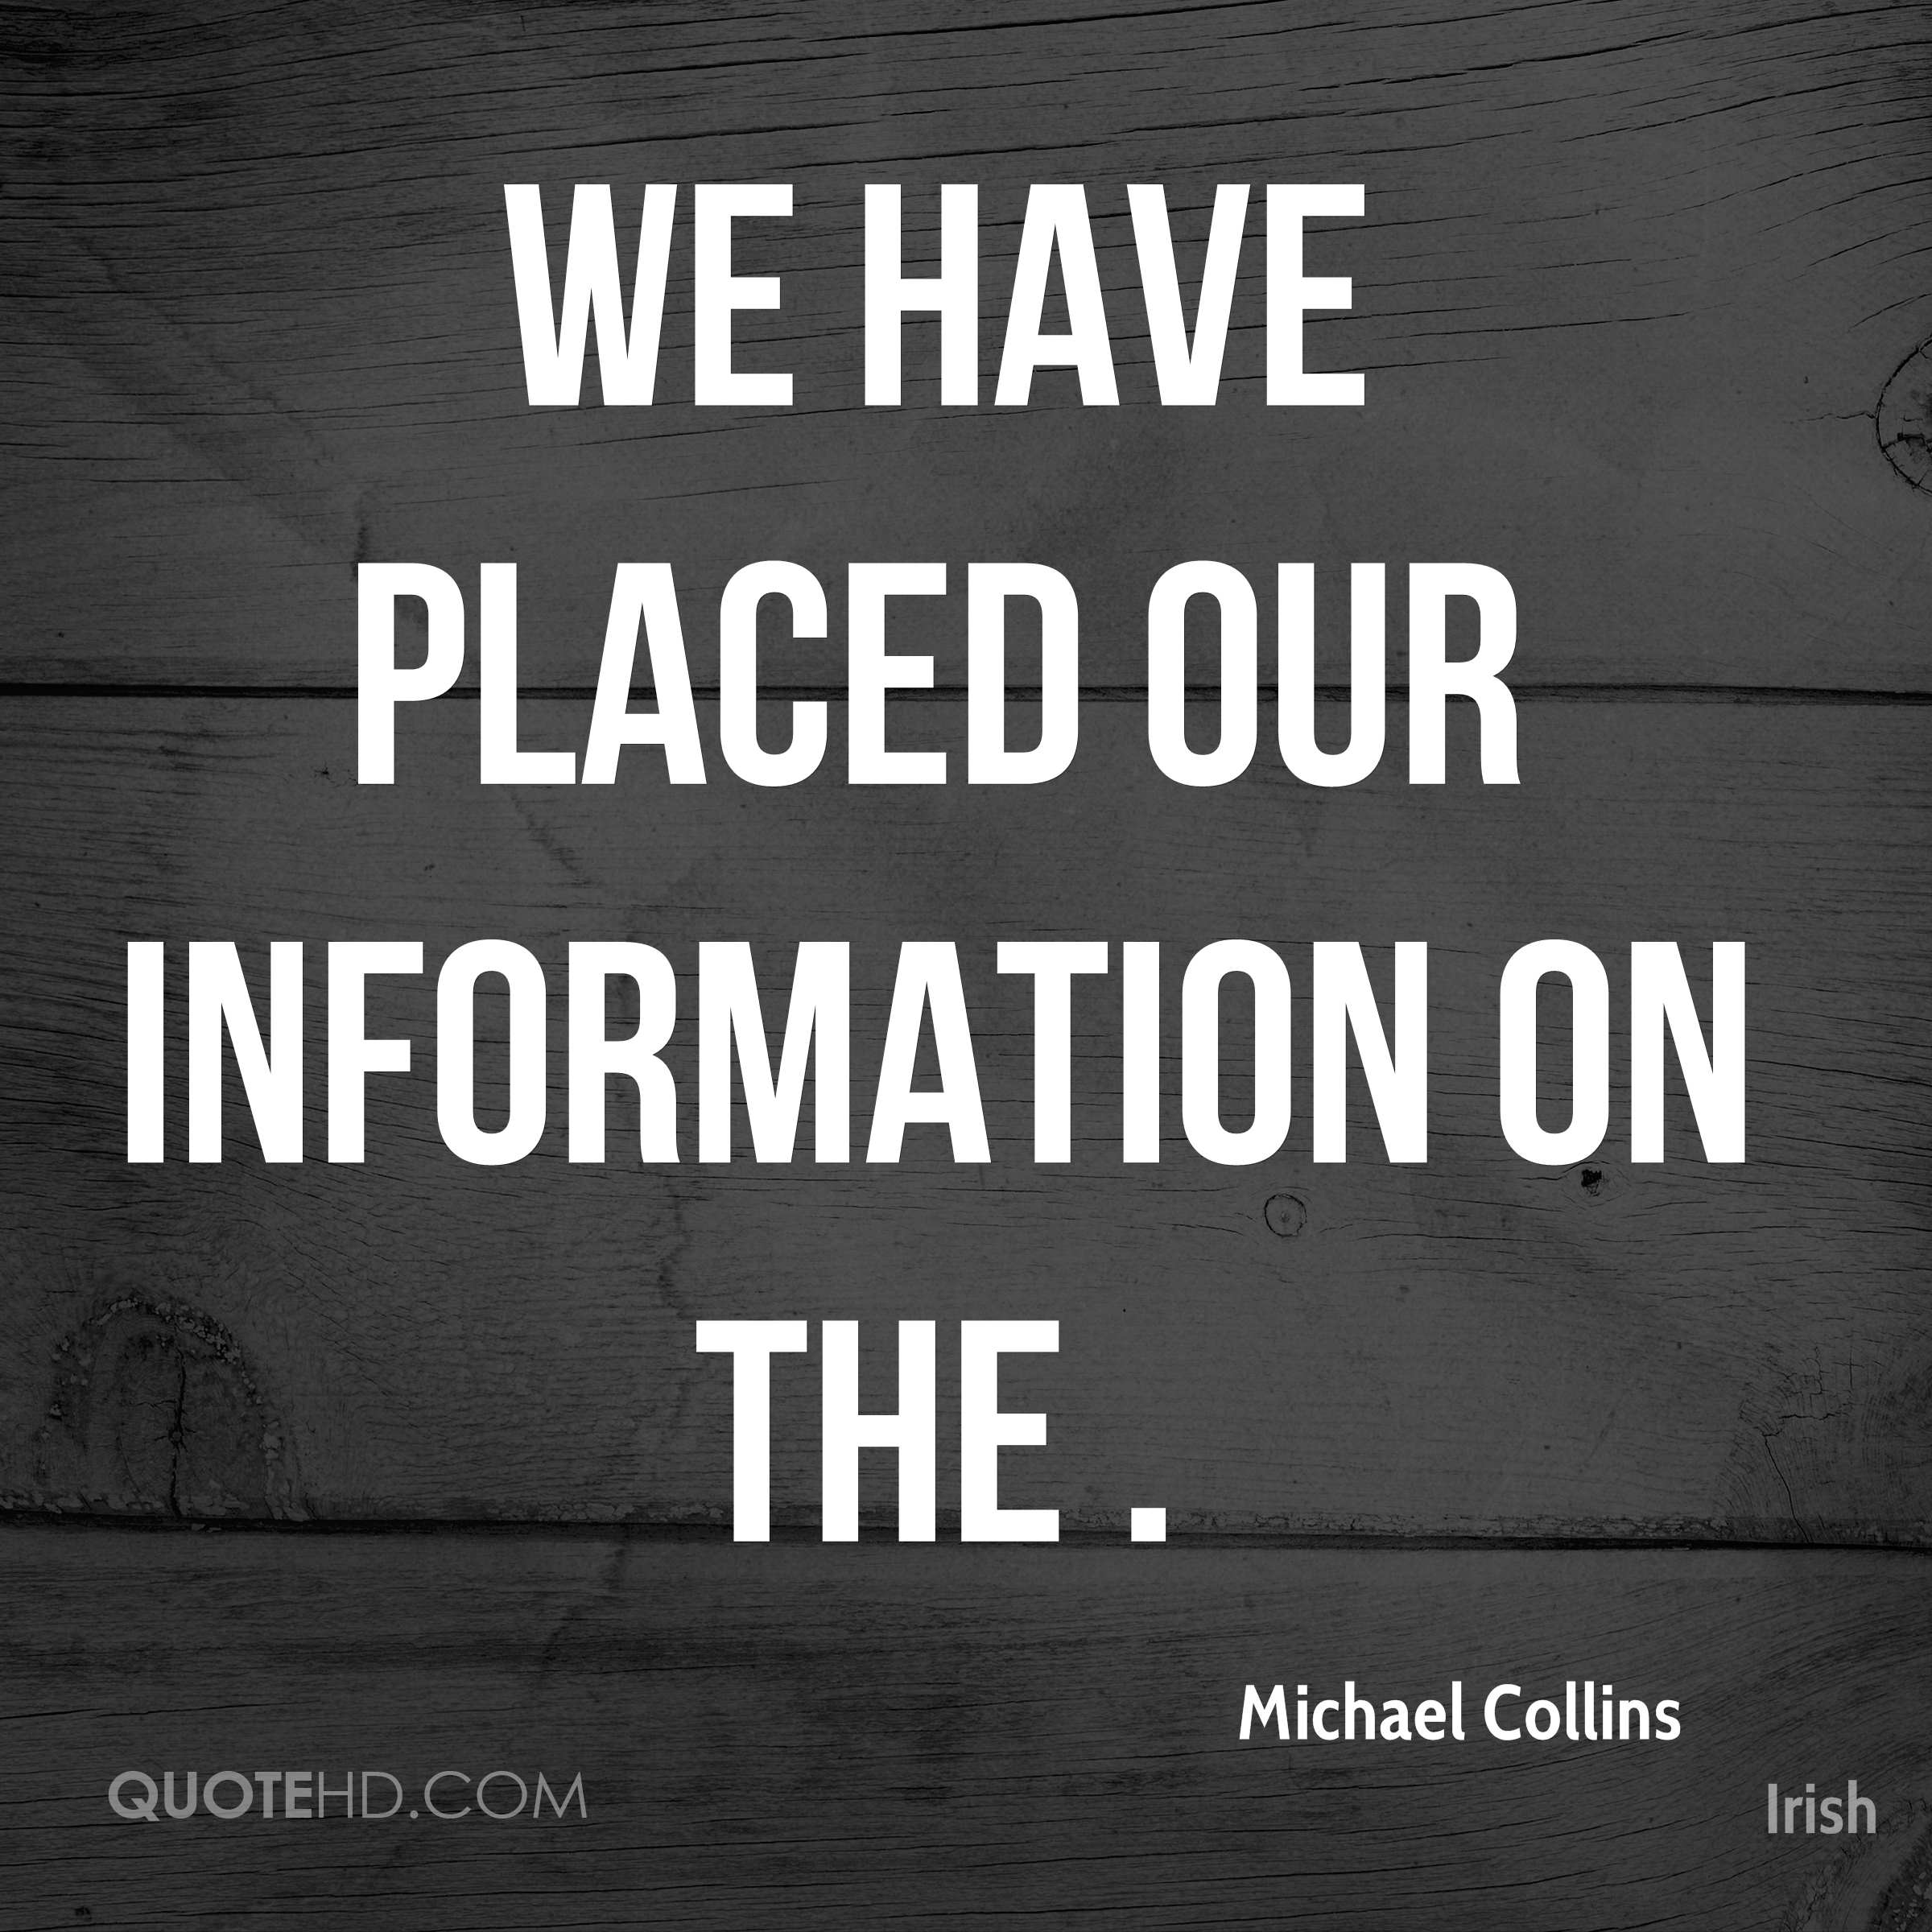 We have placed our information on the .